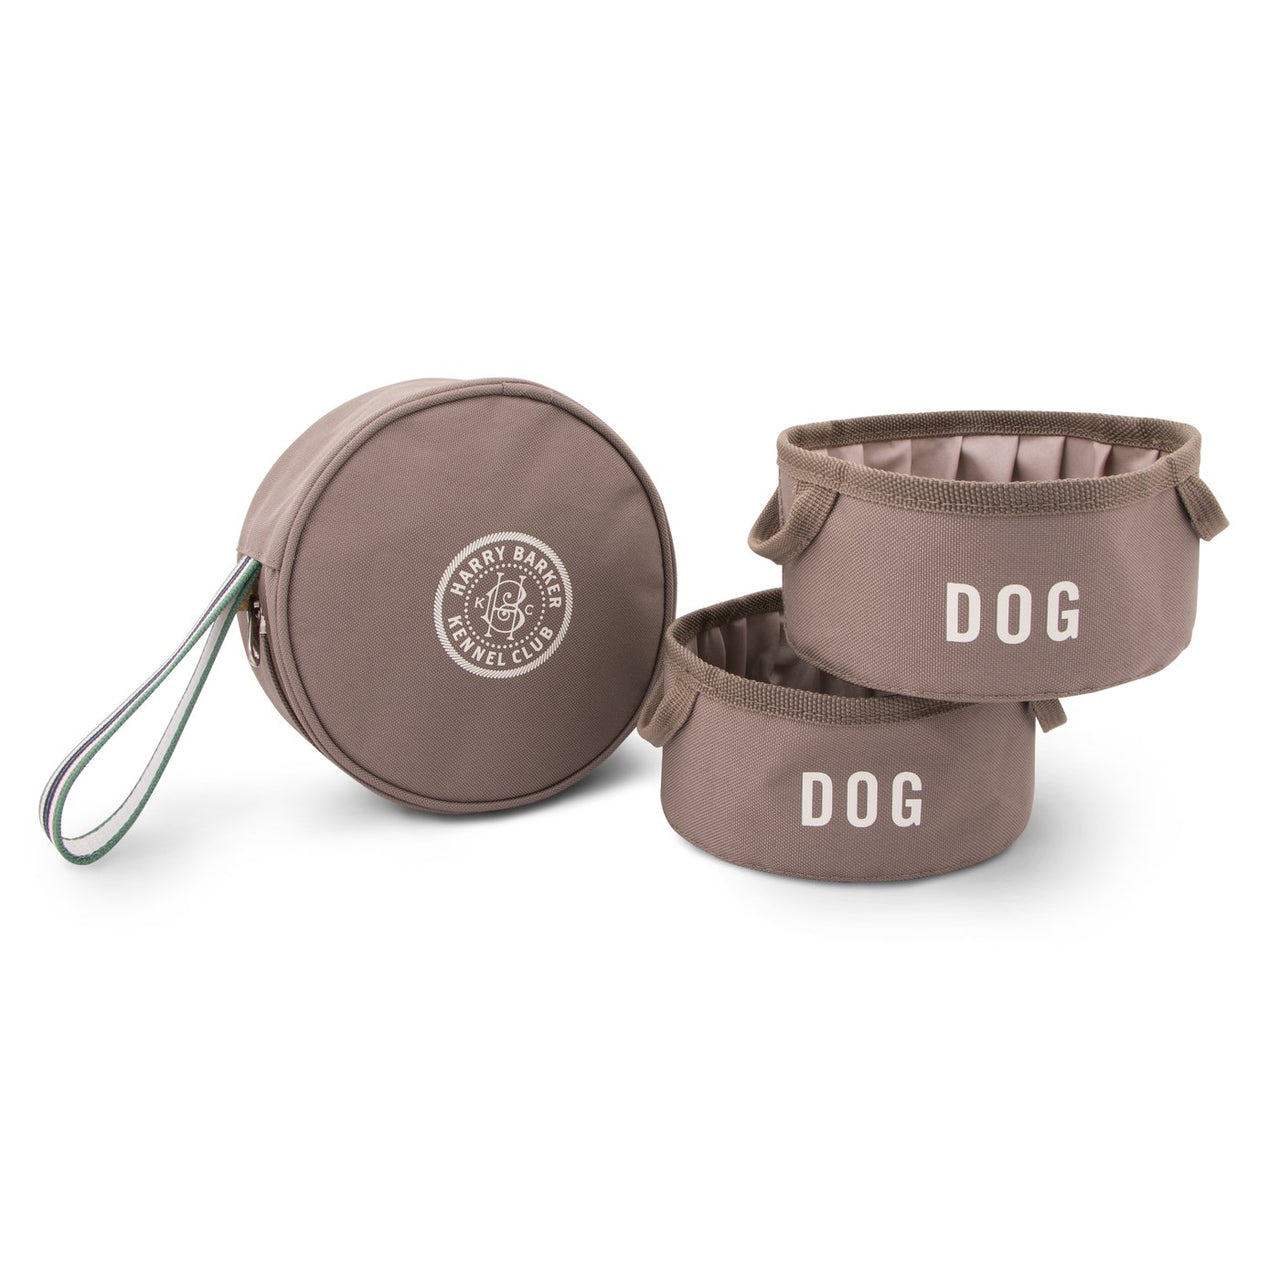 Kennel Club Fold-Up Travel Bowls and Pouch set